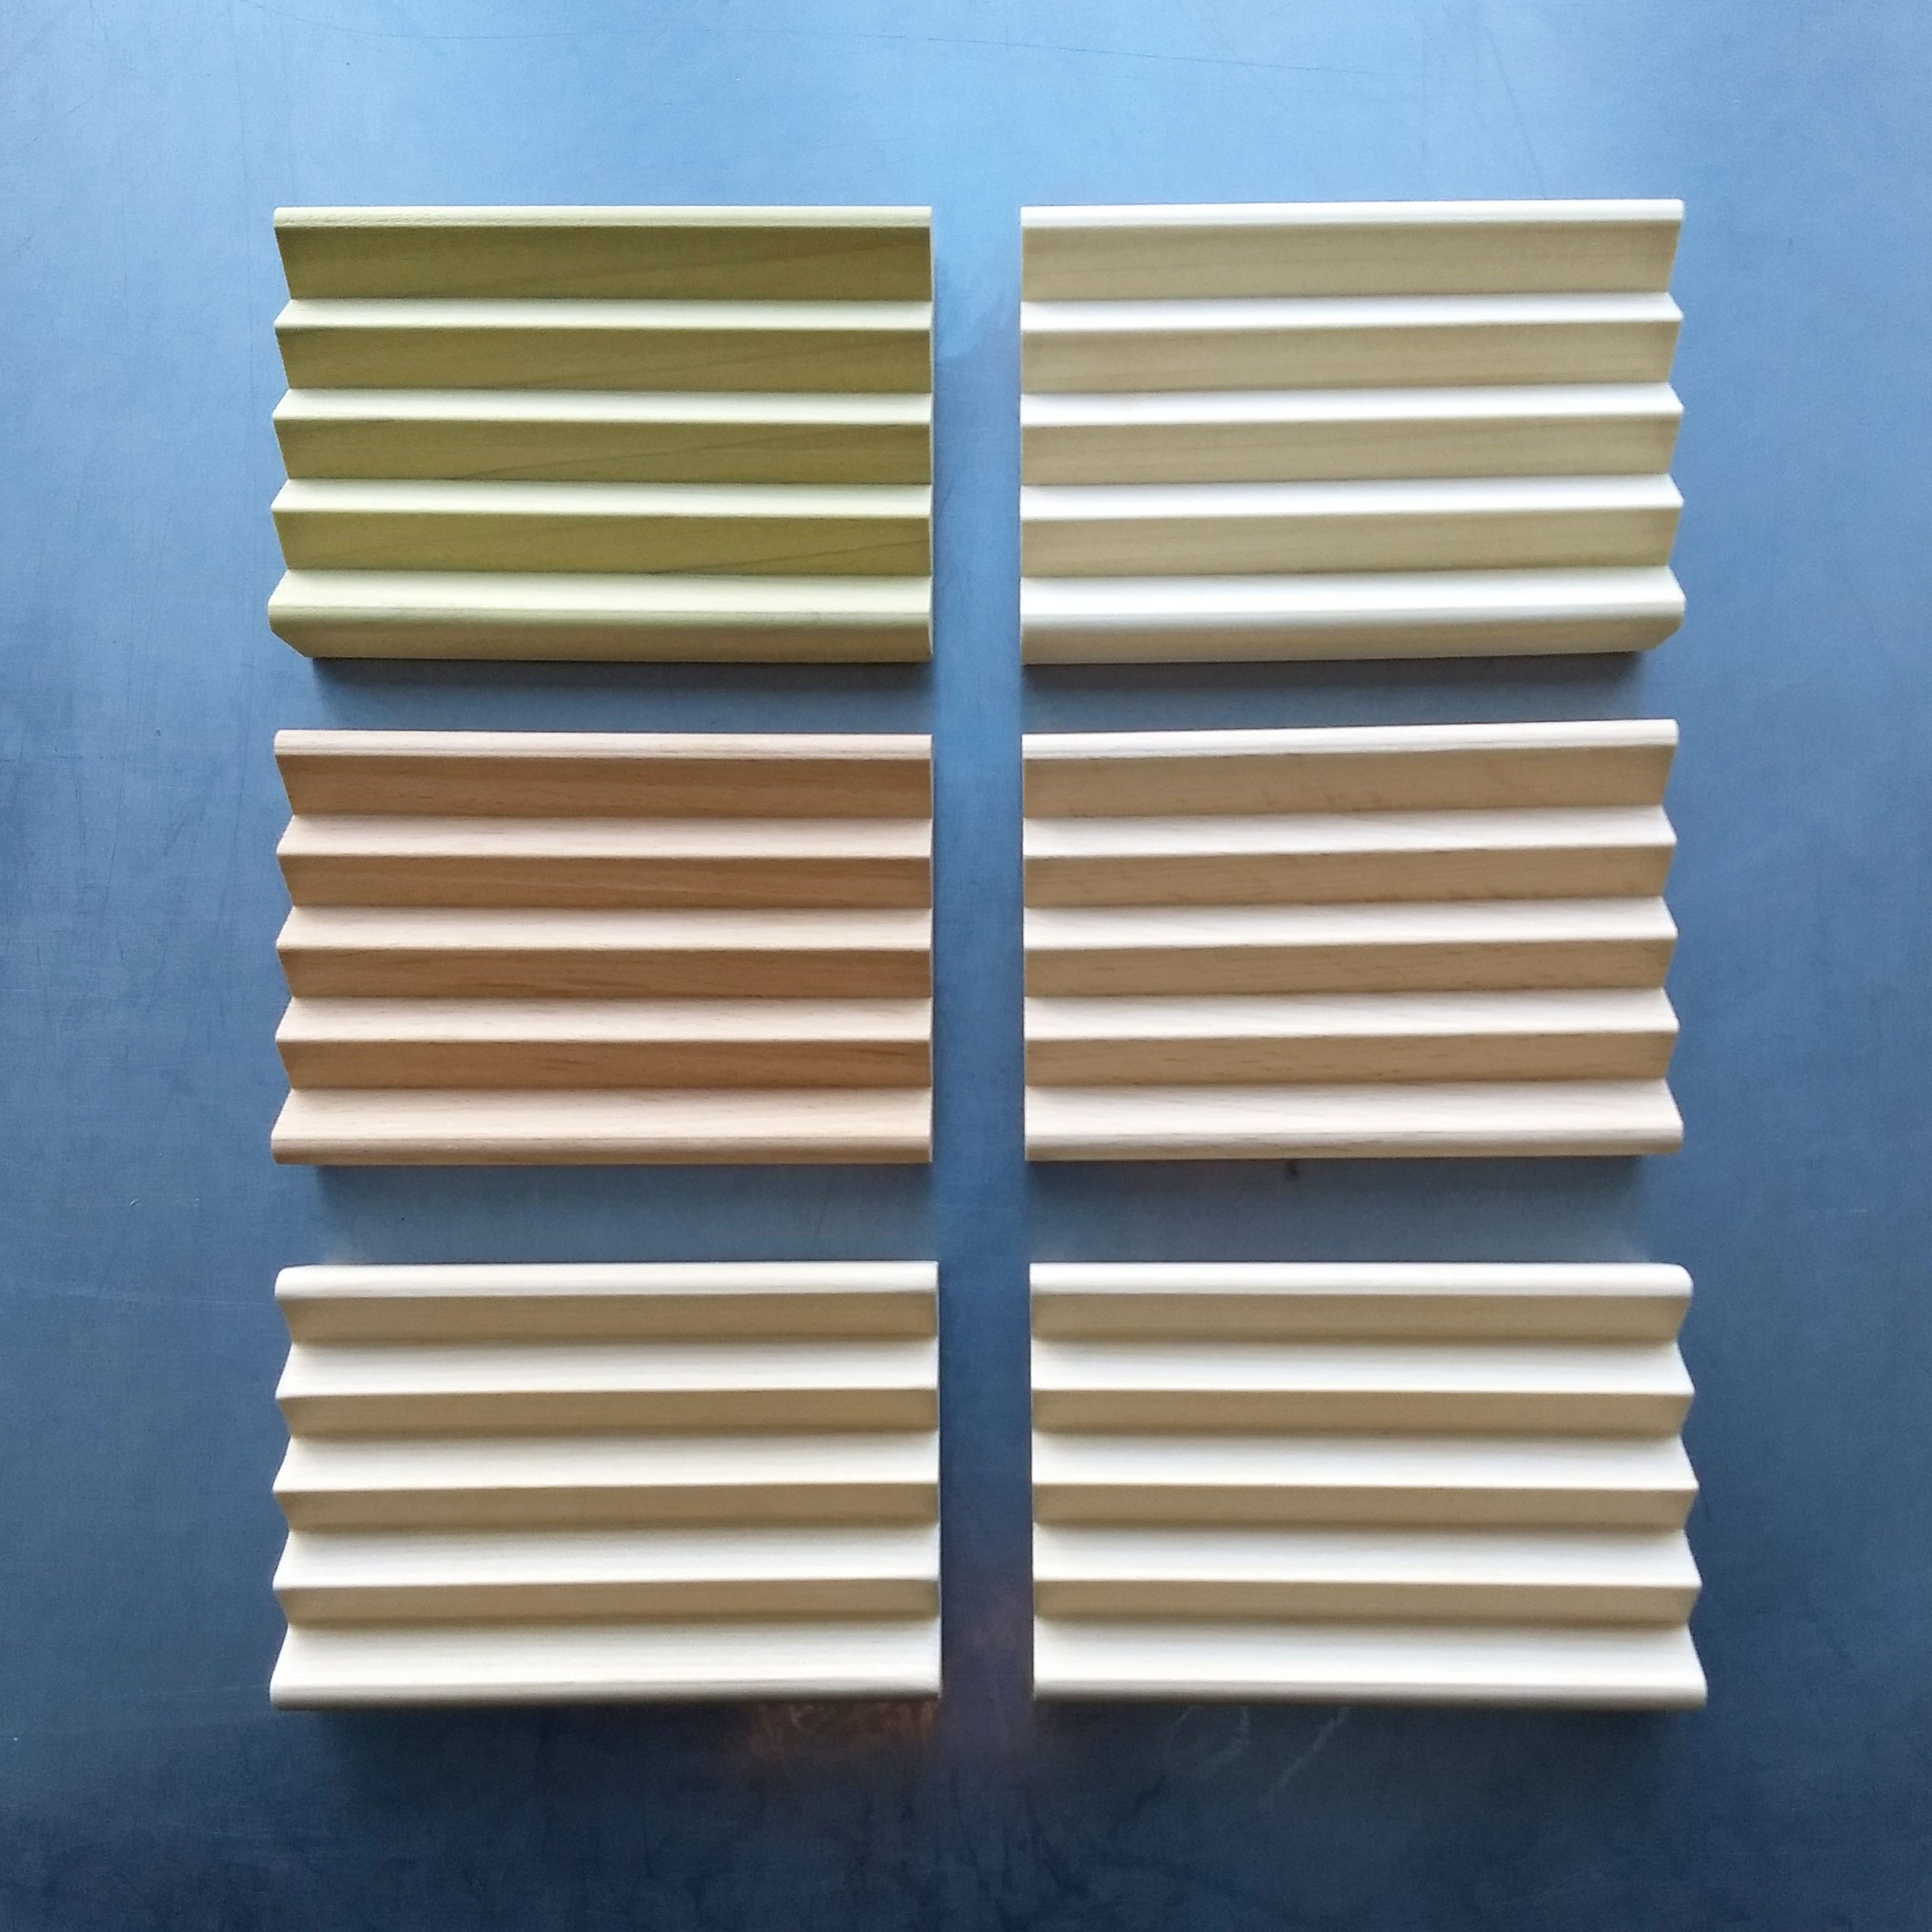 zigzag style soap dishes